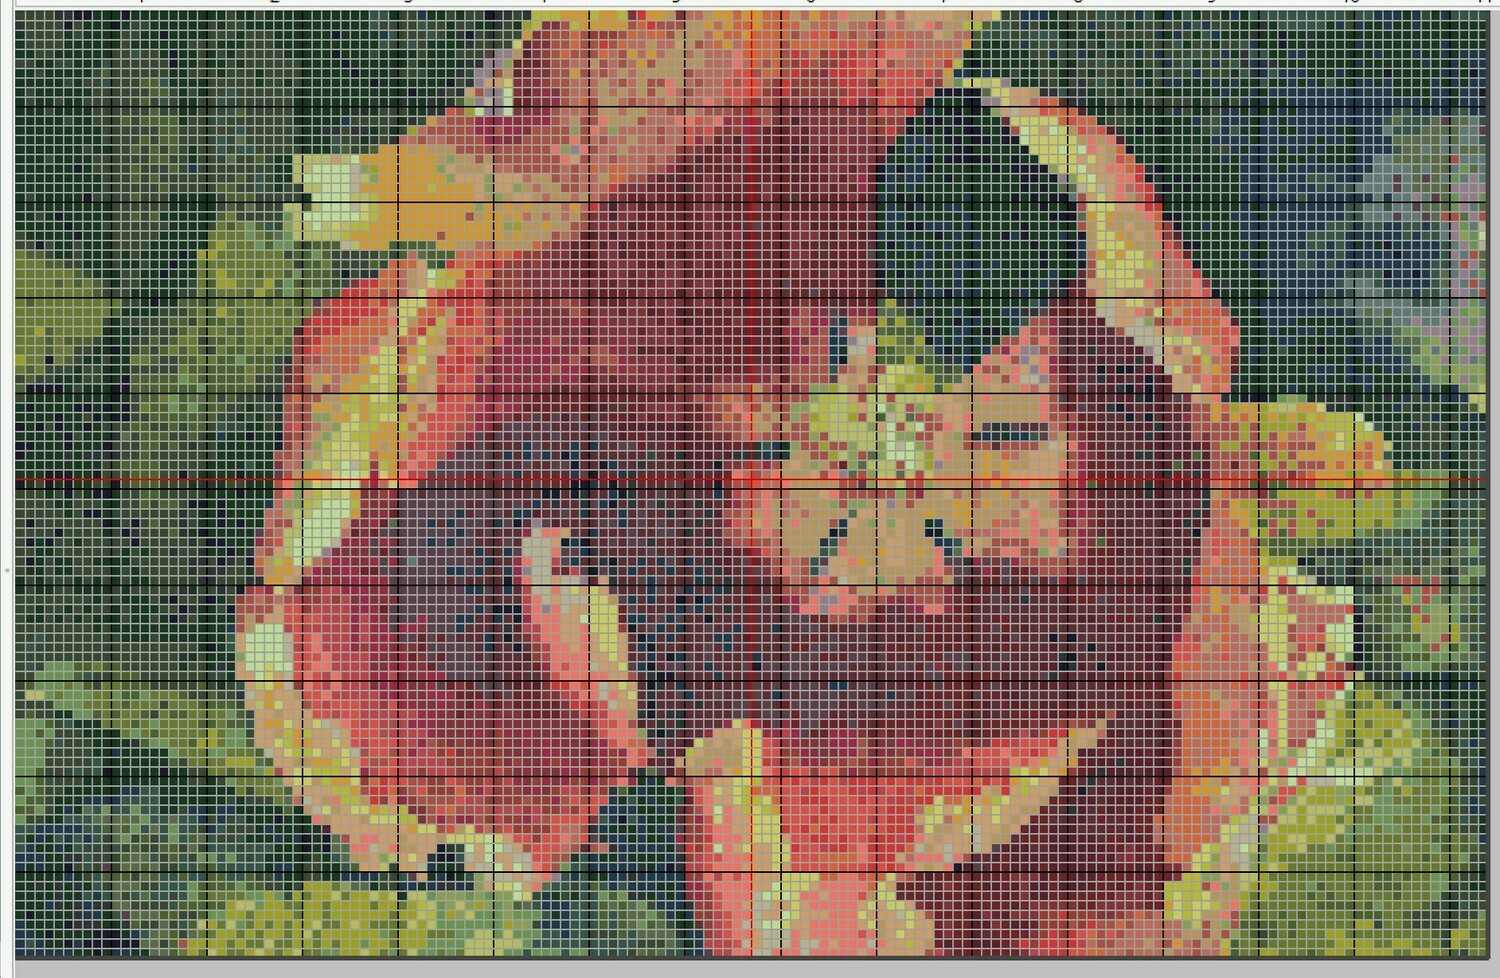 Beautiful Floral Cross Stitch - Orange Parrot Tulip - Pattern Only - Instant Digital Download